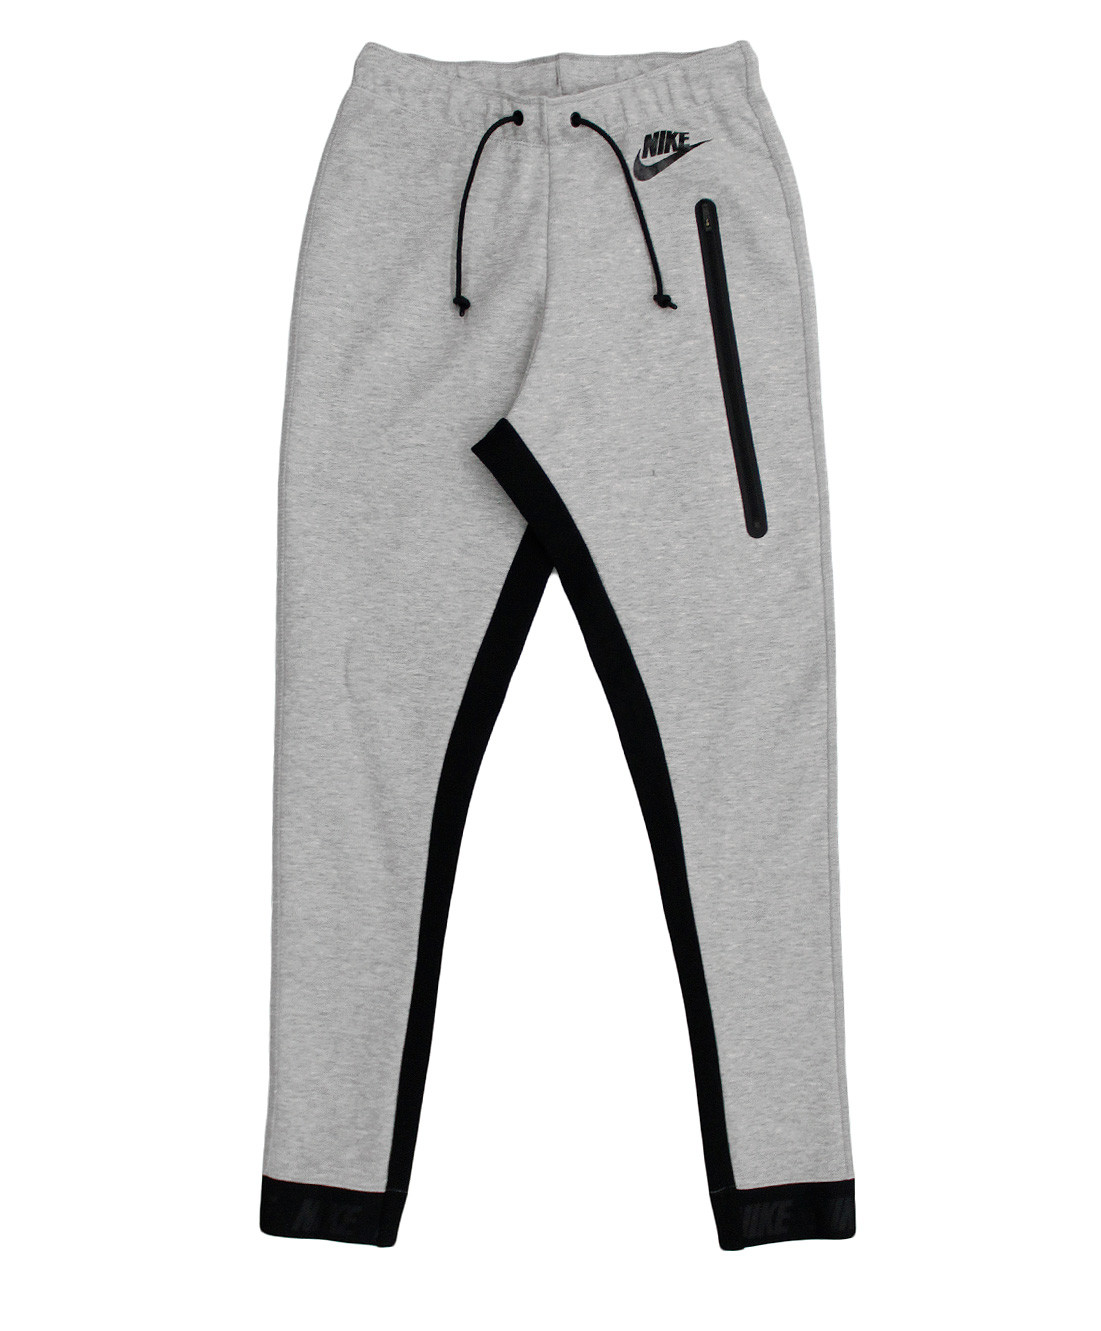 Luxury  Vintage Patterns Nike Pants Grey Tech Fleece Nike Pants 2016  4962